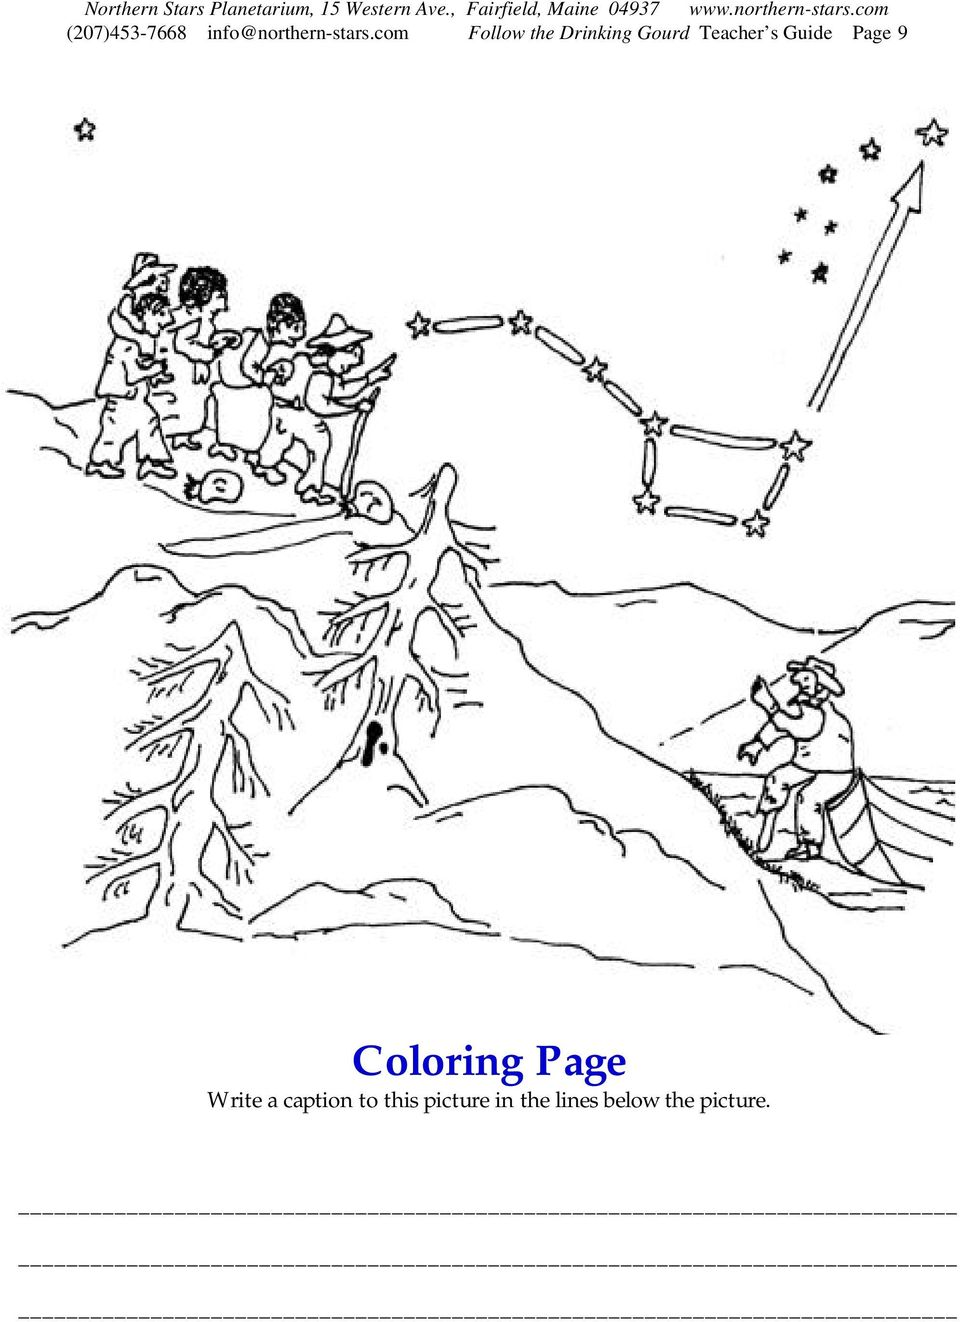 Guide Page 9 Coloring Page Write a